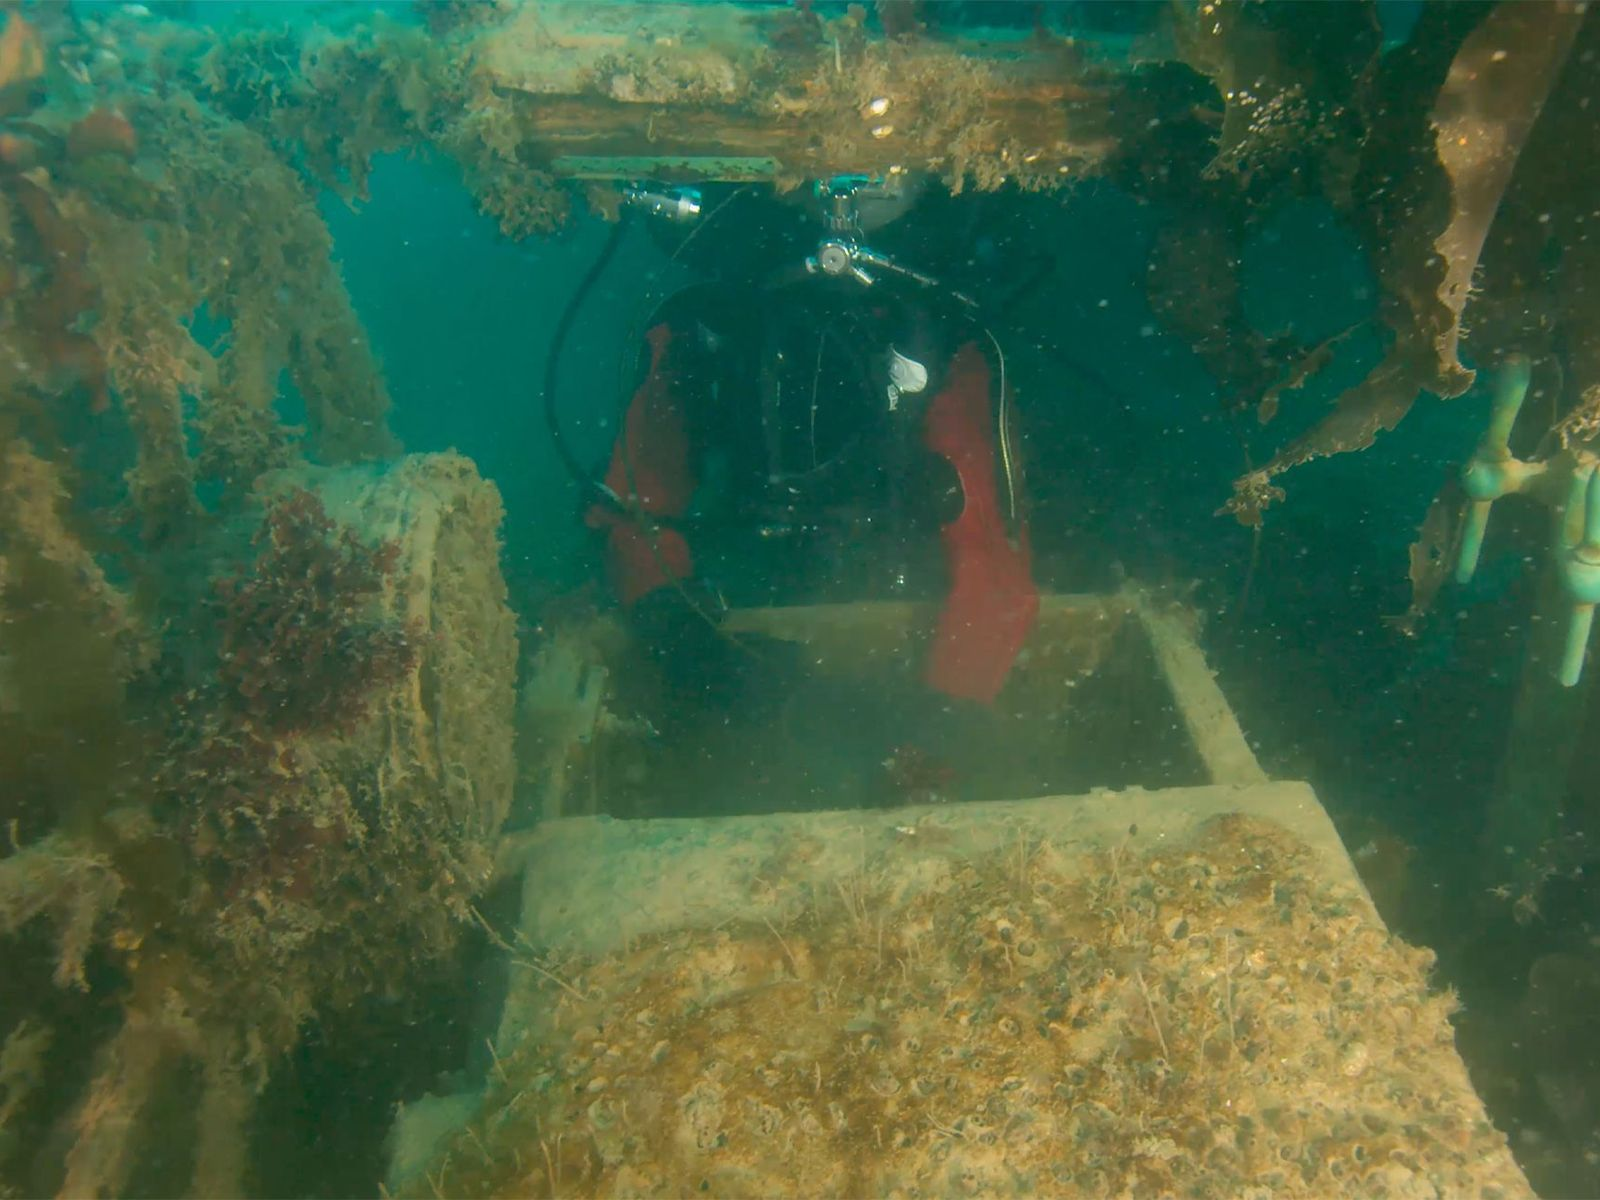 To investigate the lower decks of the H.M.S. Terror, a Parks Canada archaeologist inserts a miniature ...